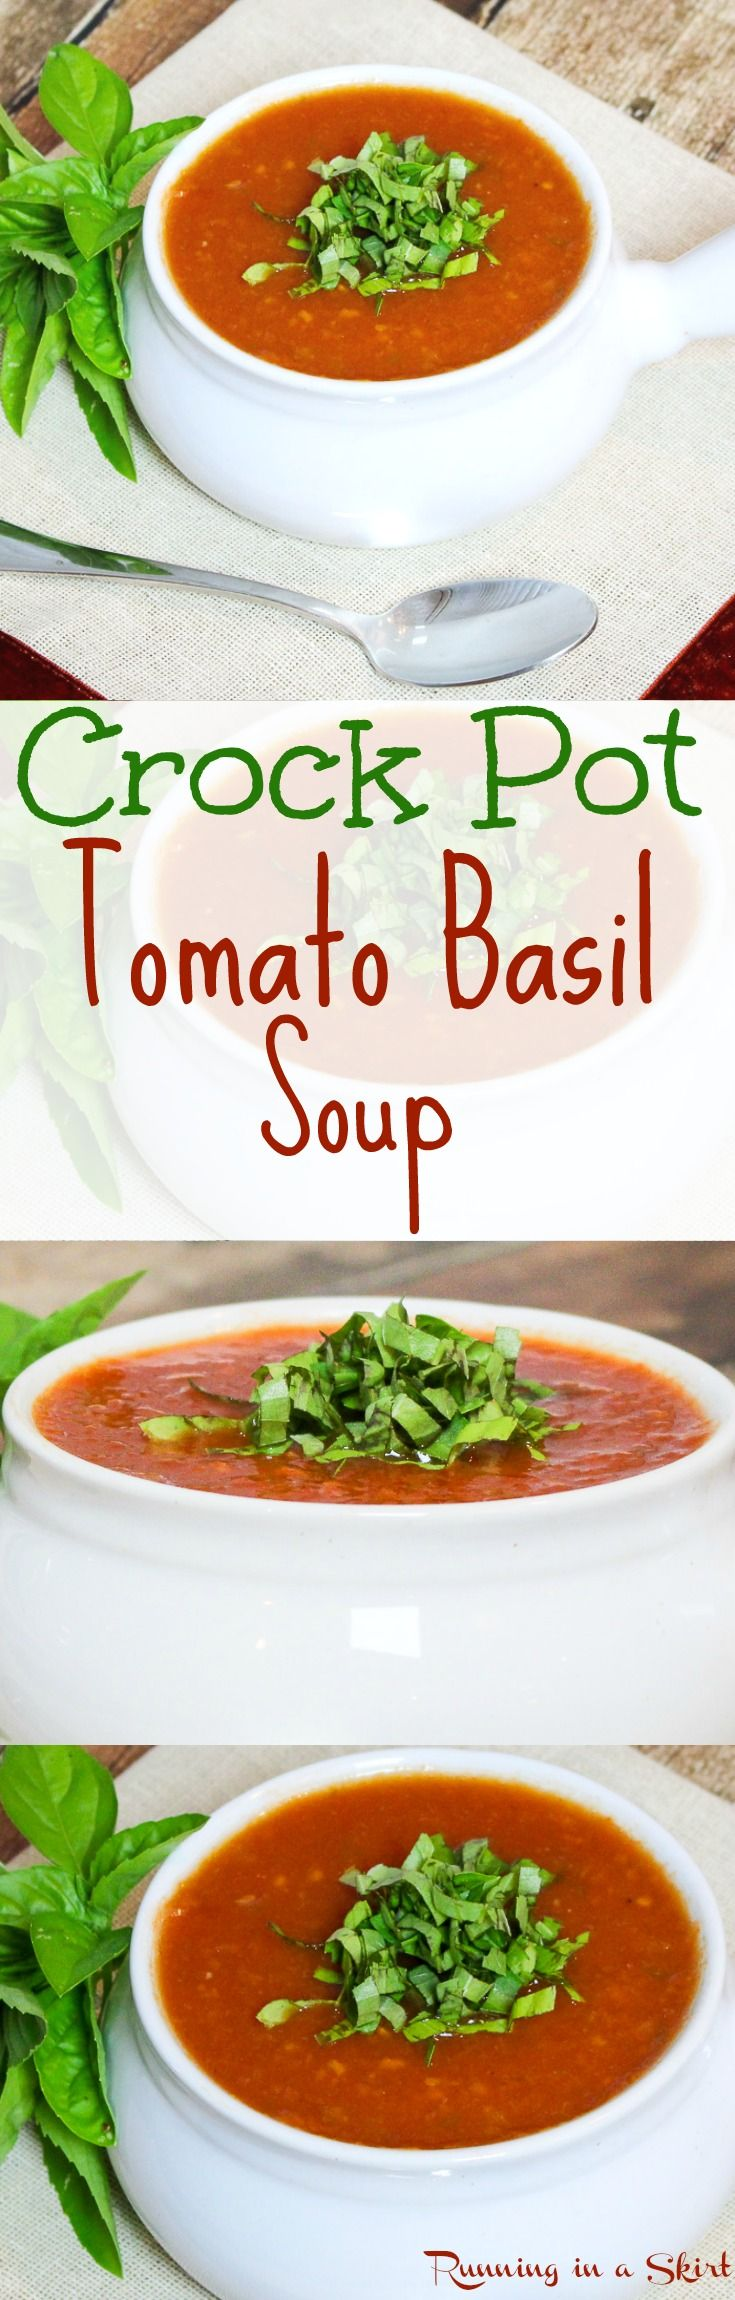 64 best images about crock pot recipes on pinterest for Crock pot vegetarian recipes healthy